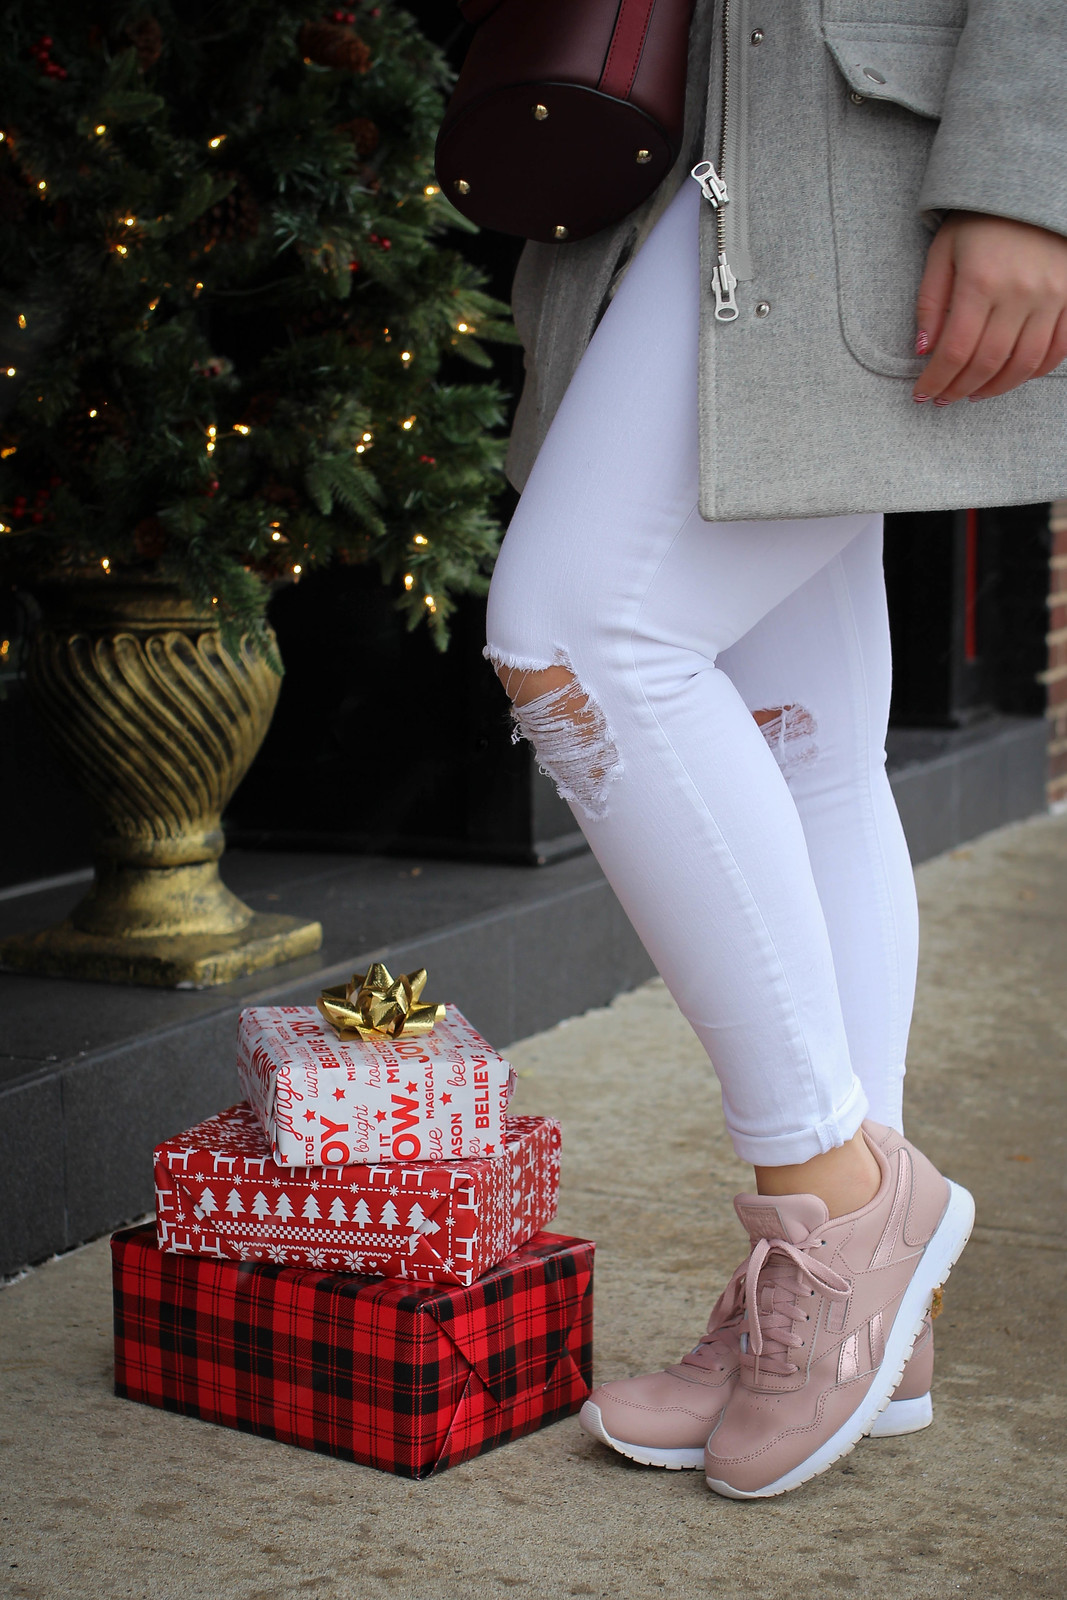 a18b739d66d2f Bundled Up in a Holiday Athleisure Look with Reebok - Living After ...